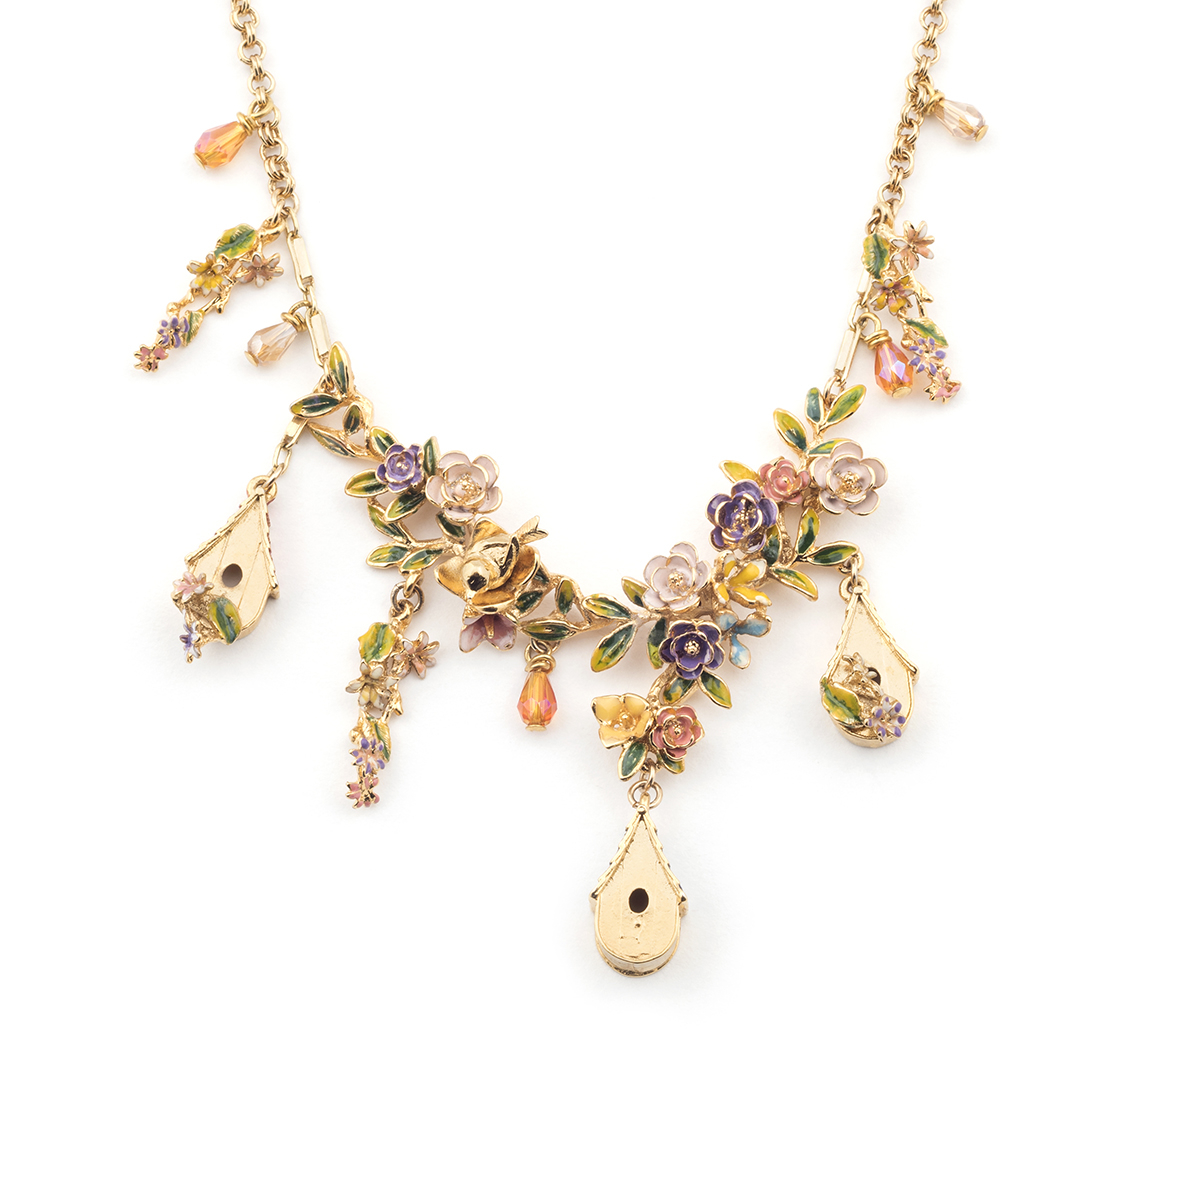 Bird House Necklace - Gold